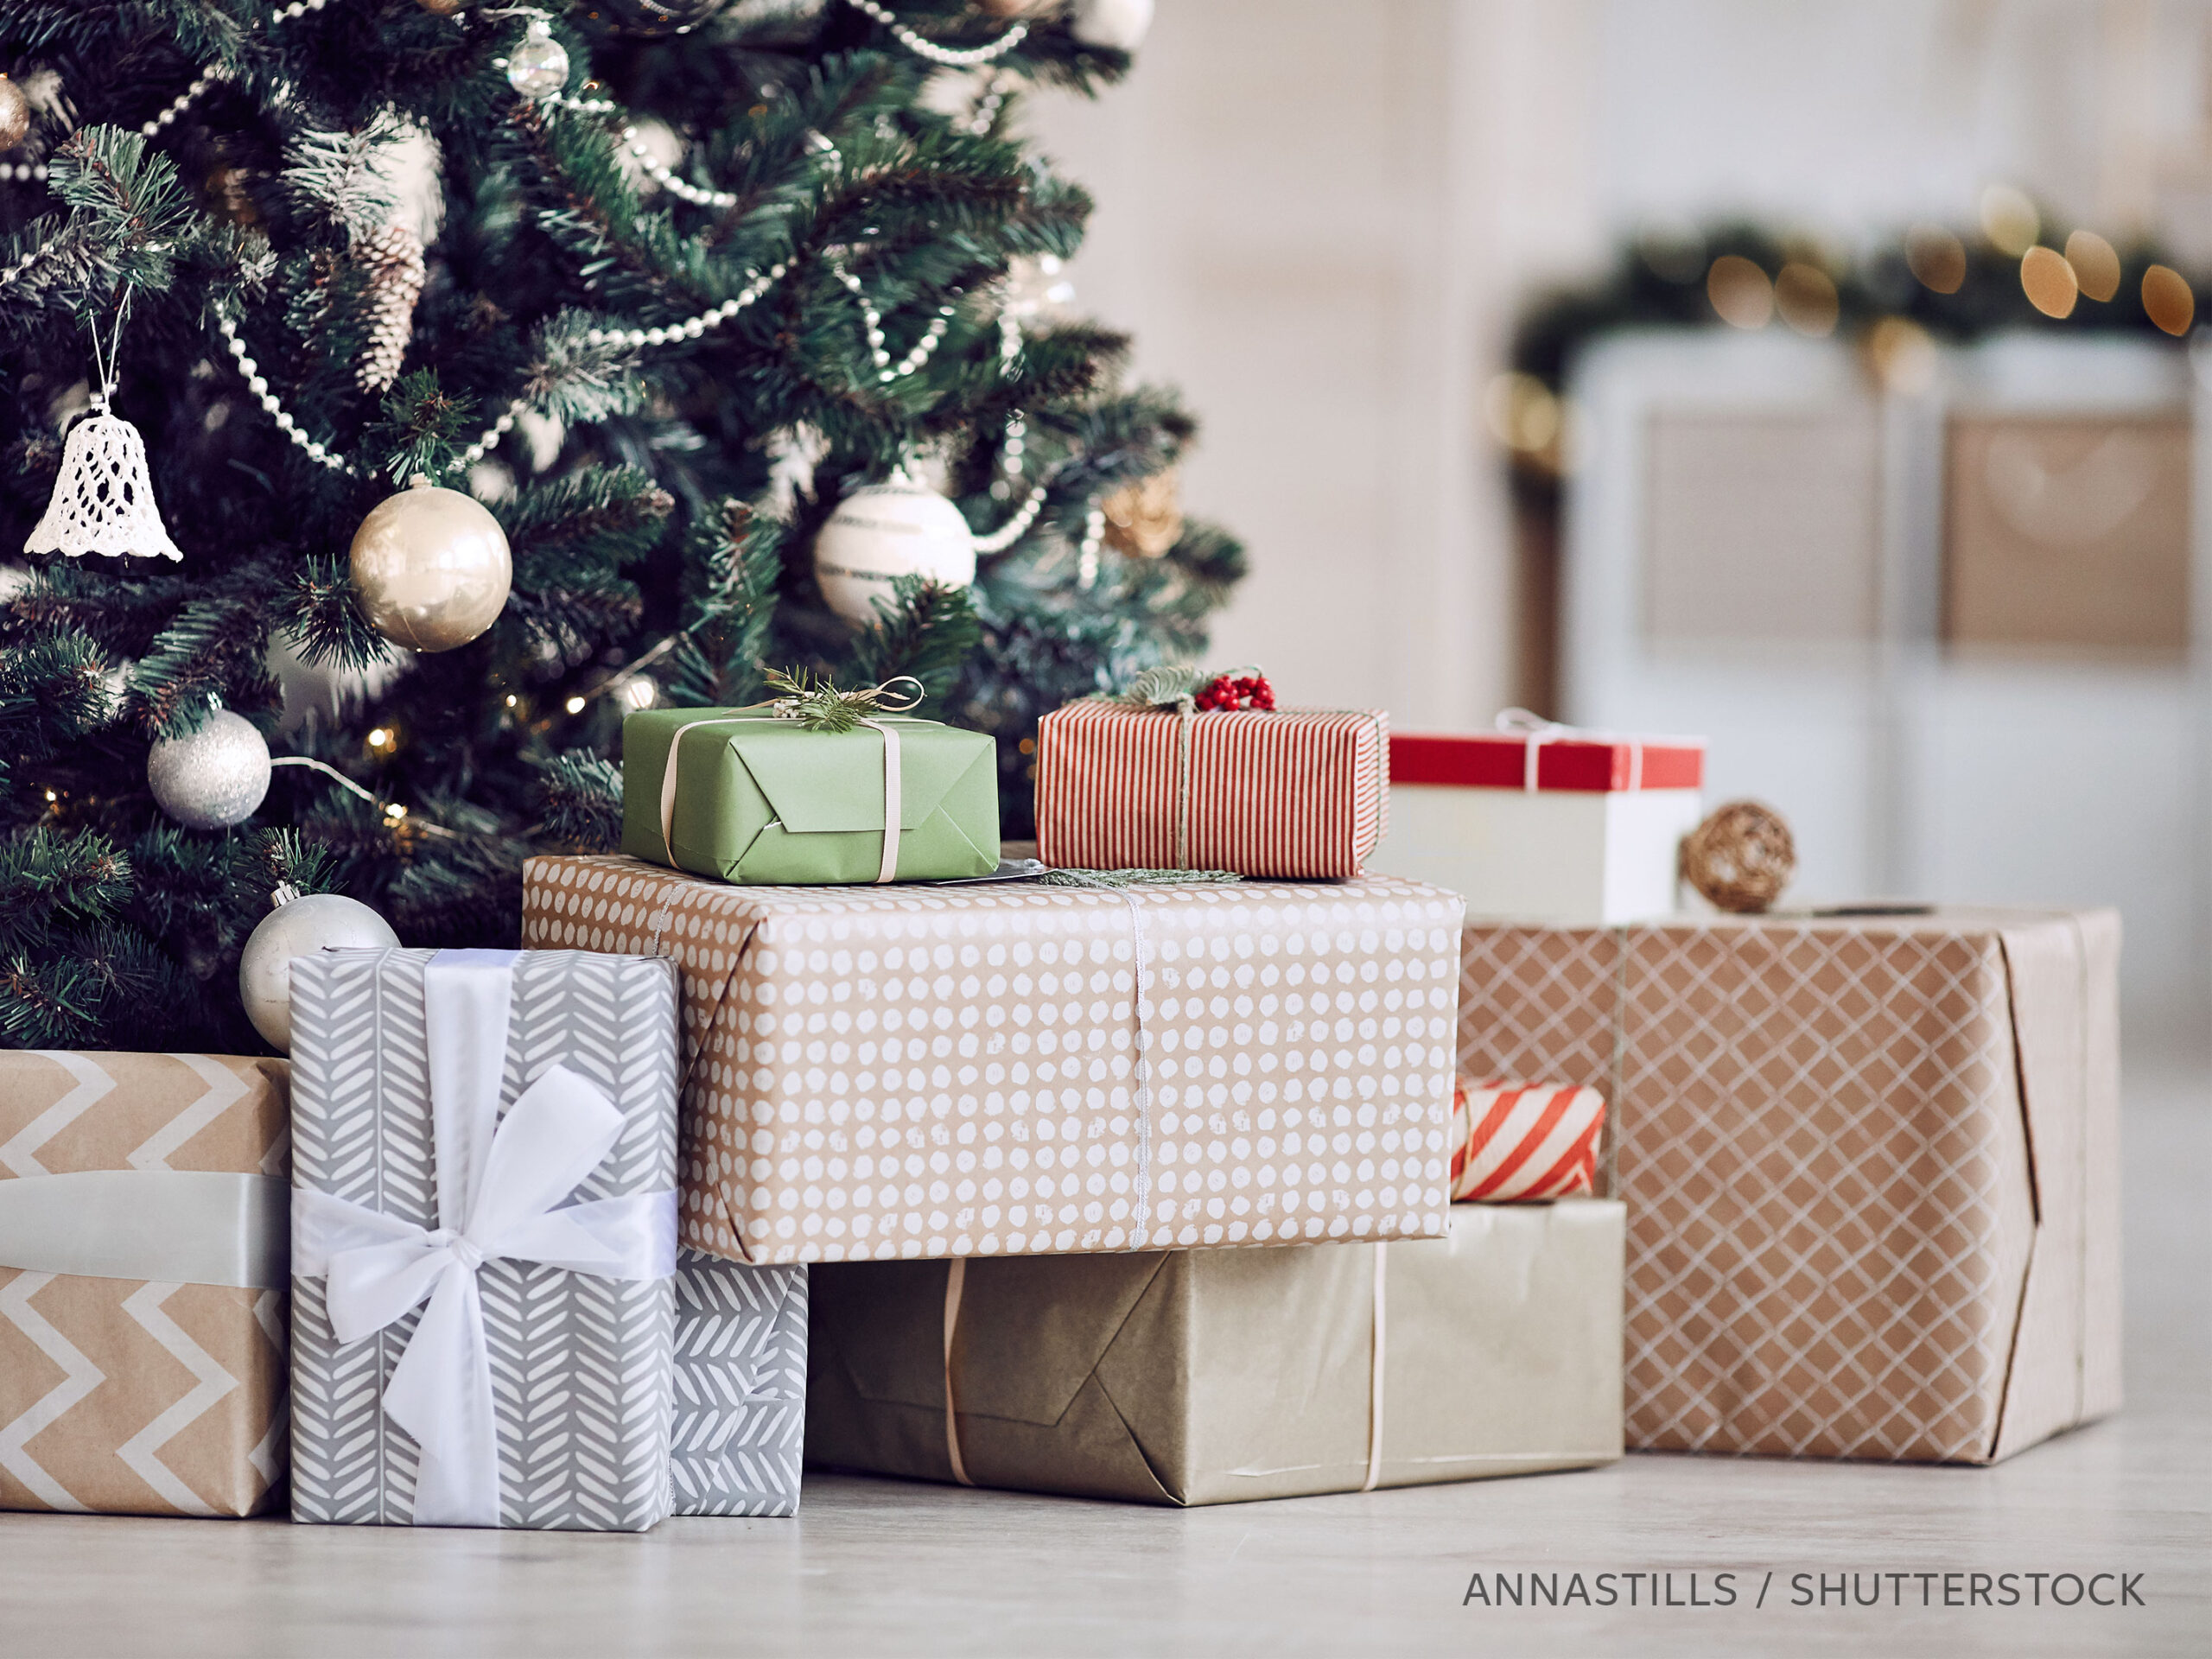 Wrapped gifts under a Christmas tree, photo